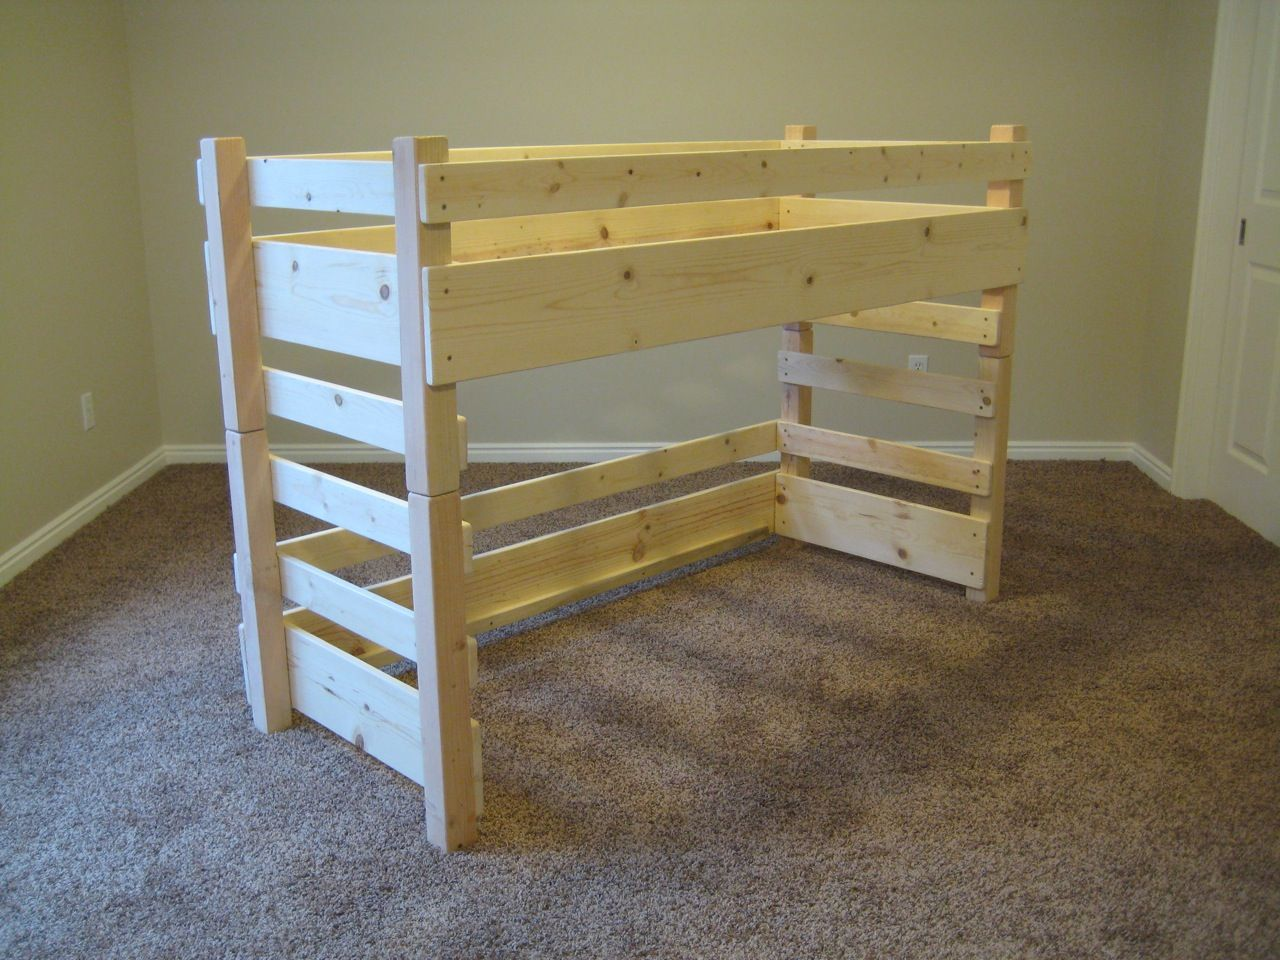 kids toddler loft beds by lil 39 bunkers it 39 s crib size things we are working on bricolage. Black Bedroom Furniture Sets. Home Design Ideas